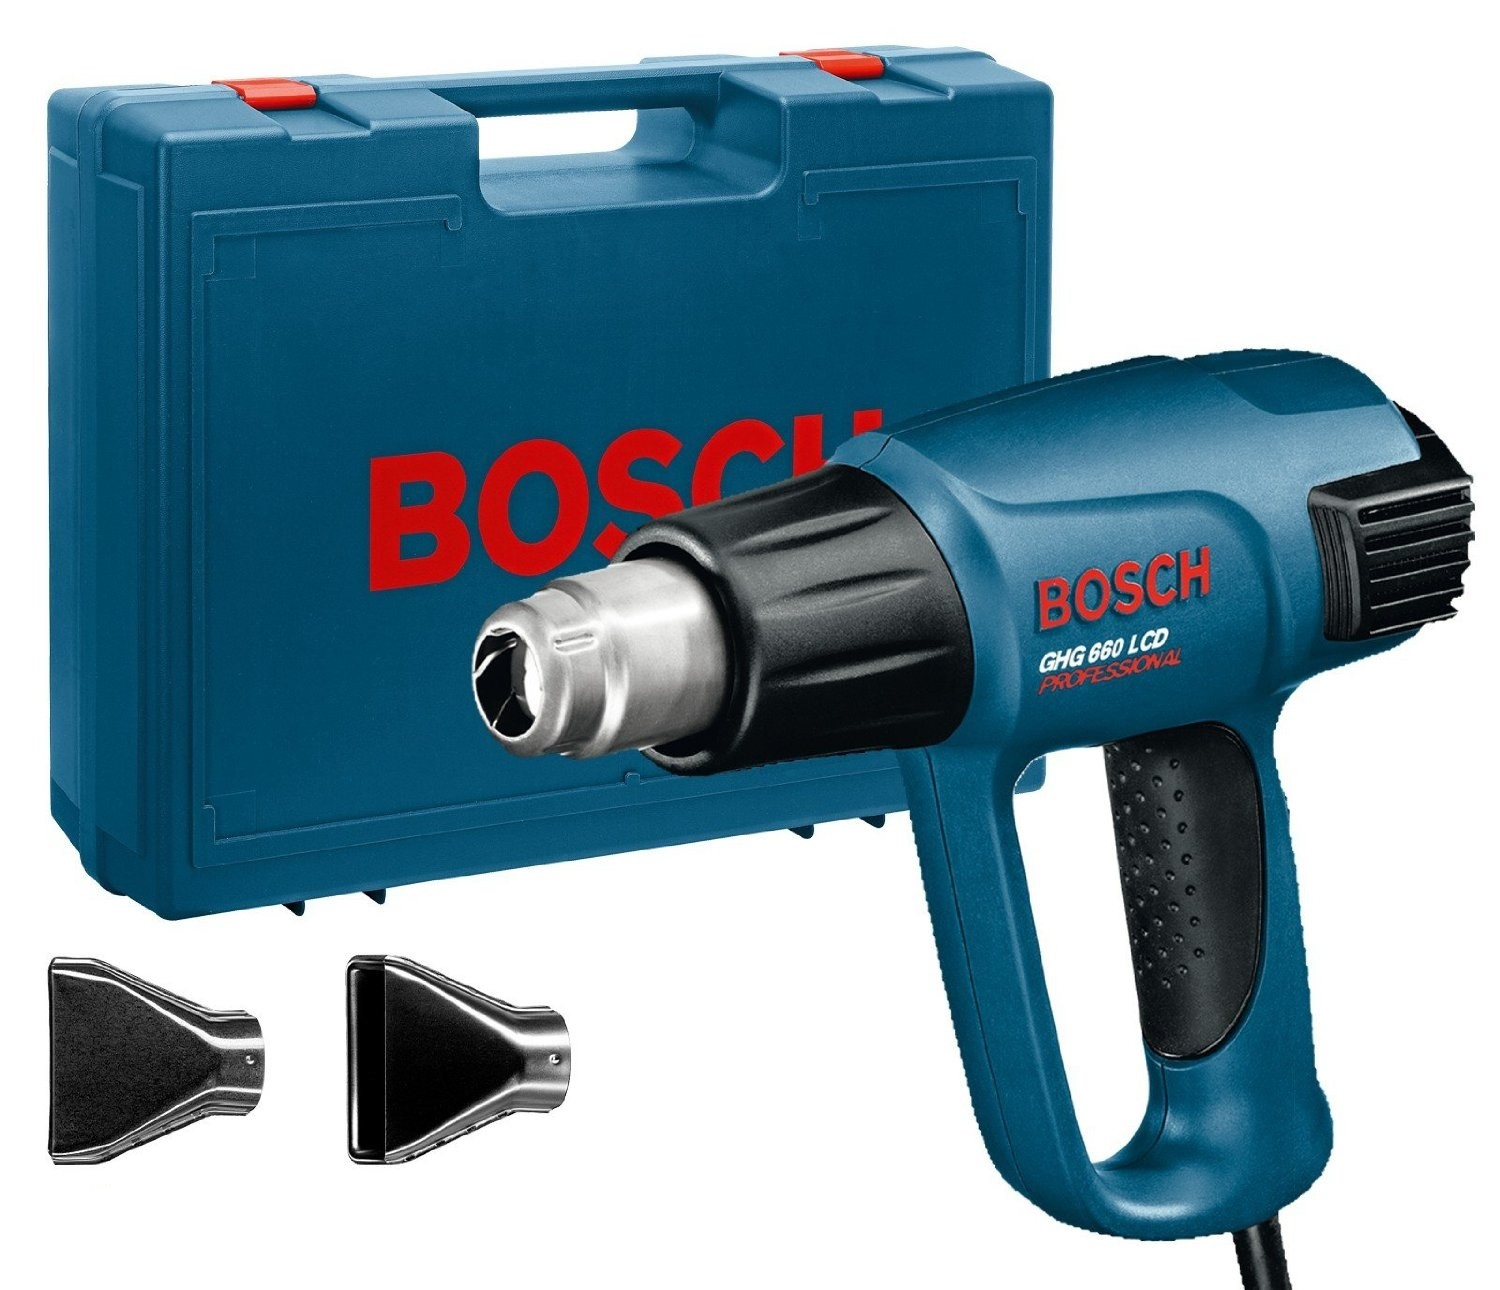 bosch ghg 660 lcd pistol grip heat gun powertool world. Black Bedroom Furniture Sets. Home Design Ideas